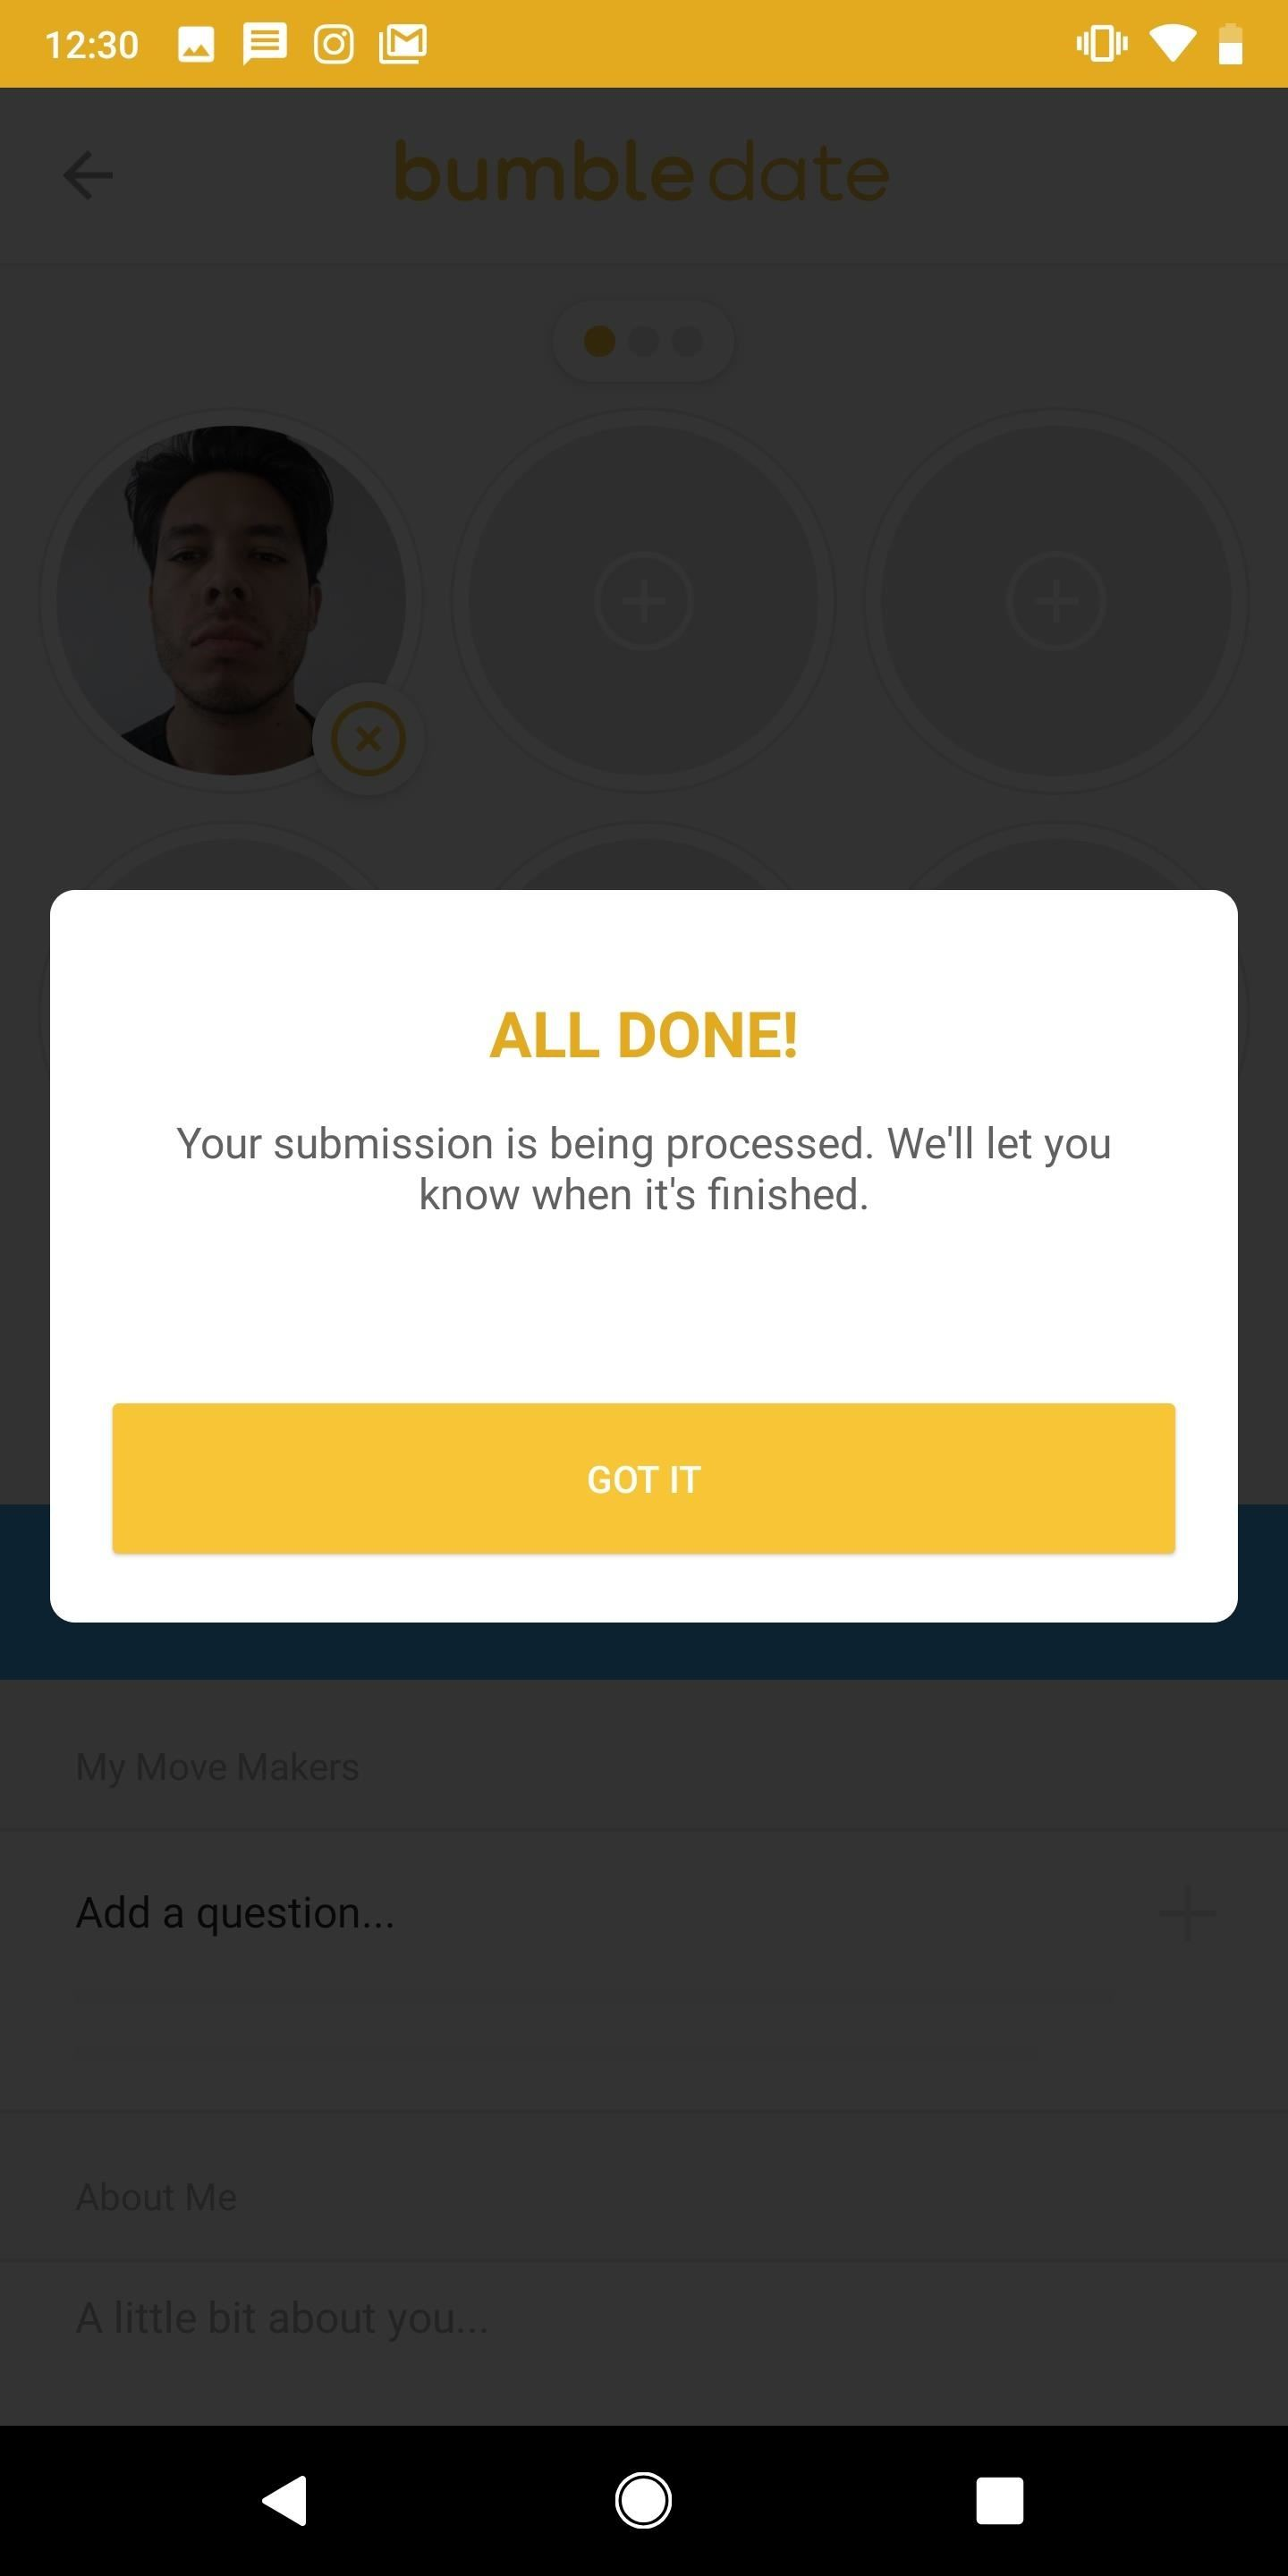 How to Verify Your Bumble Account to Help Fight Catfishing